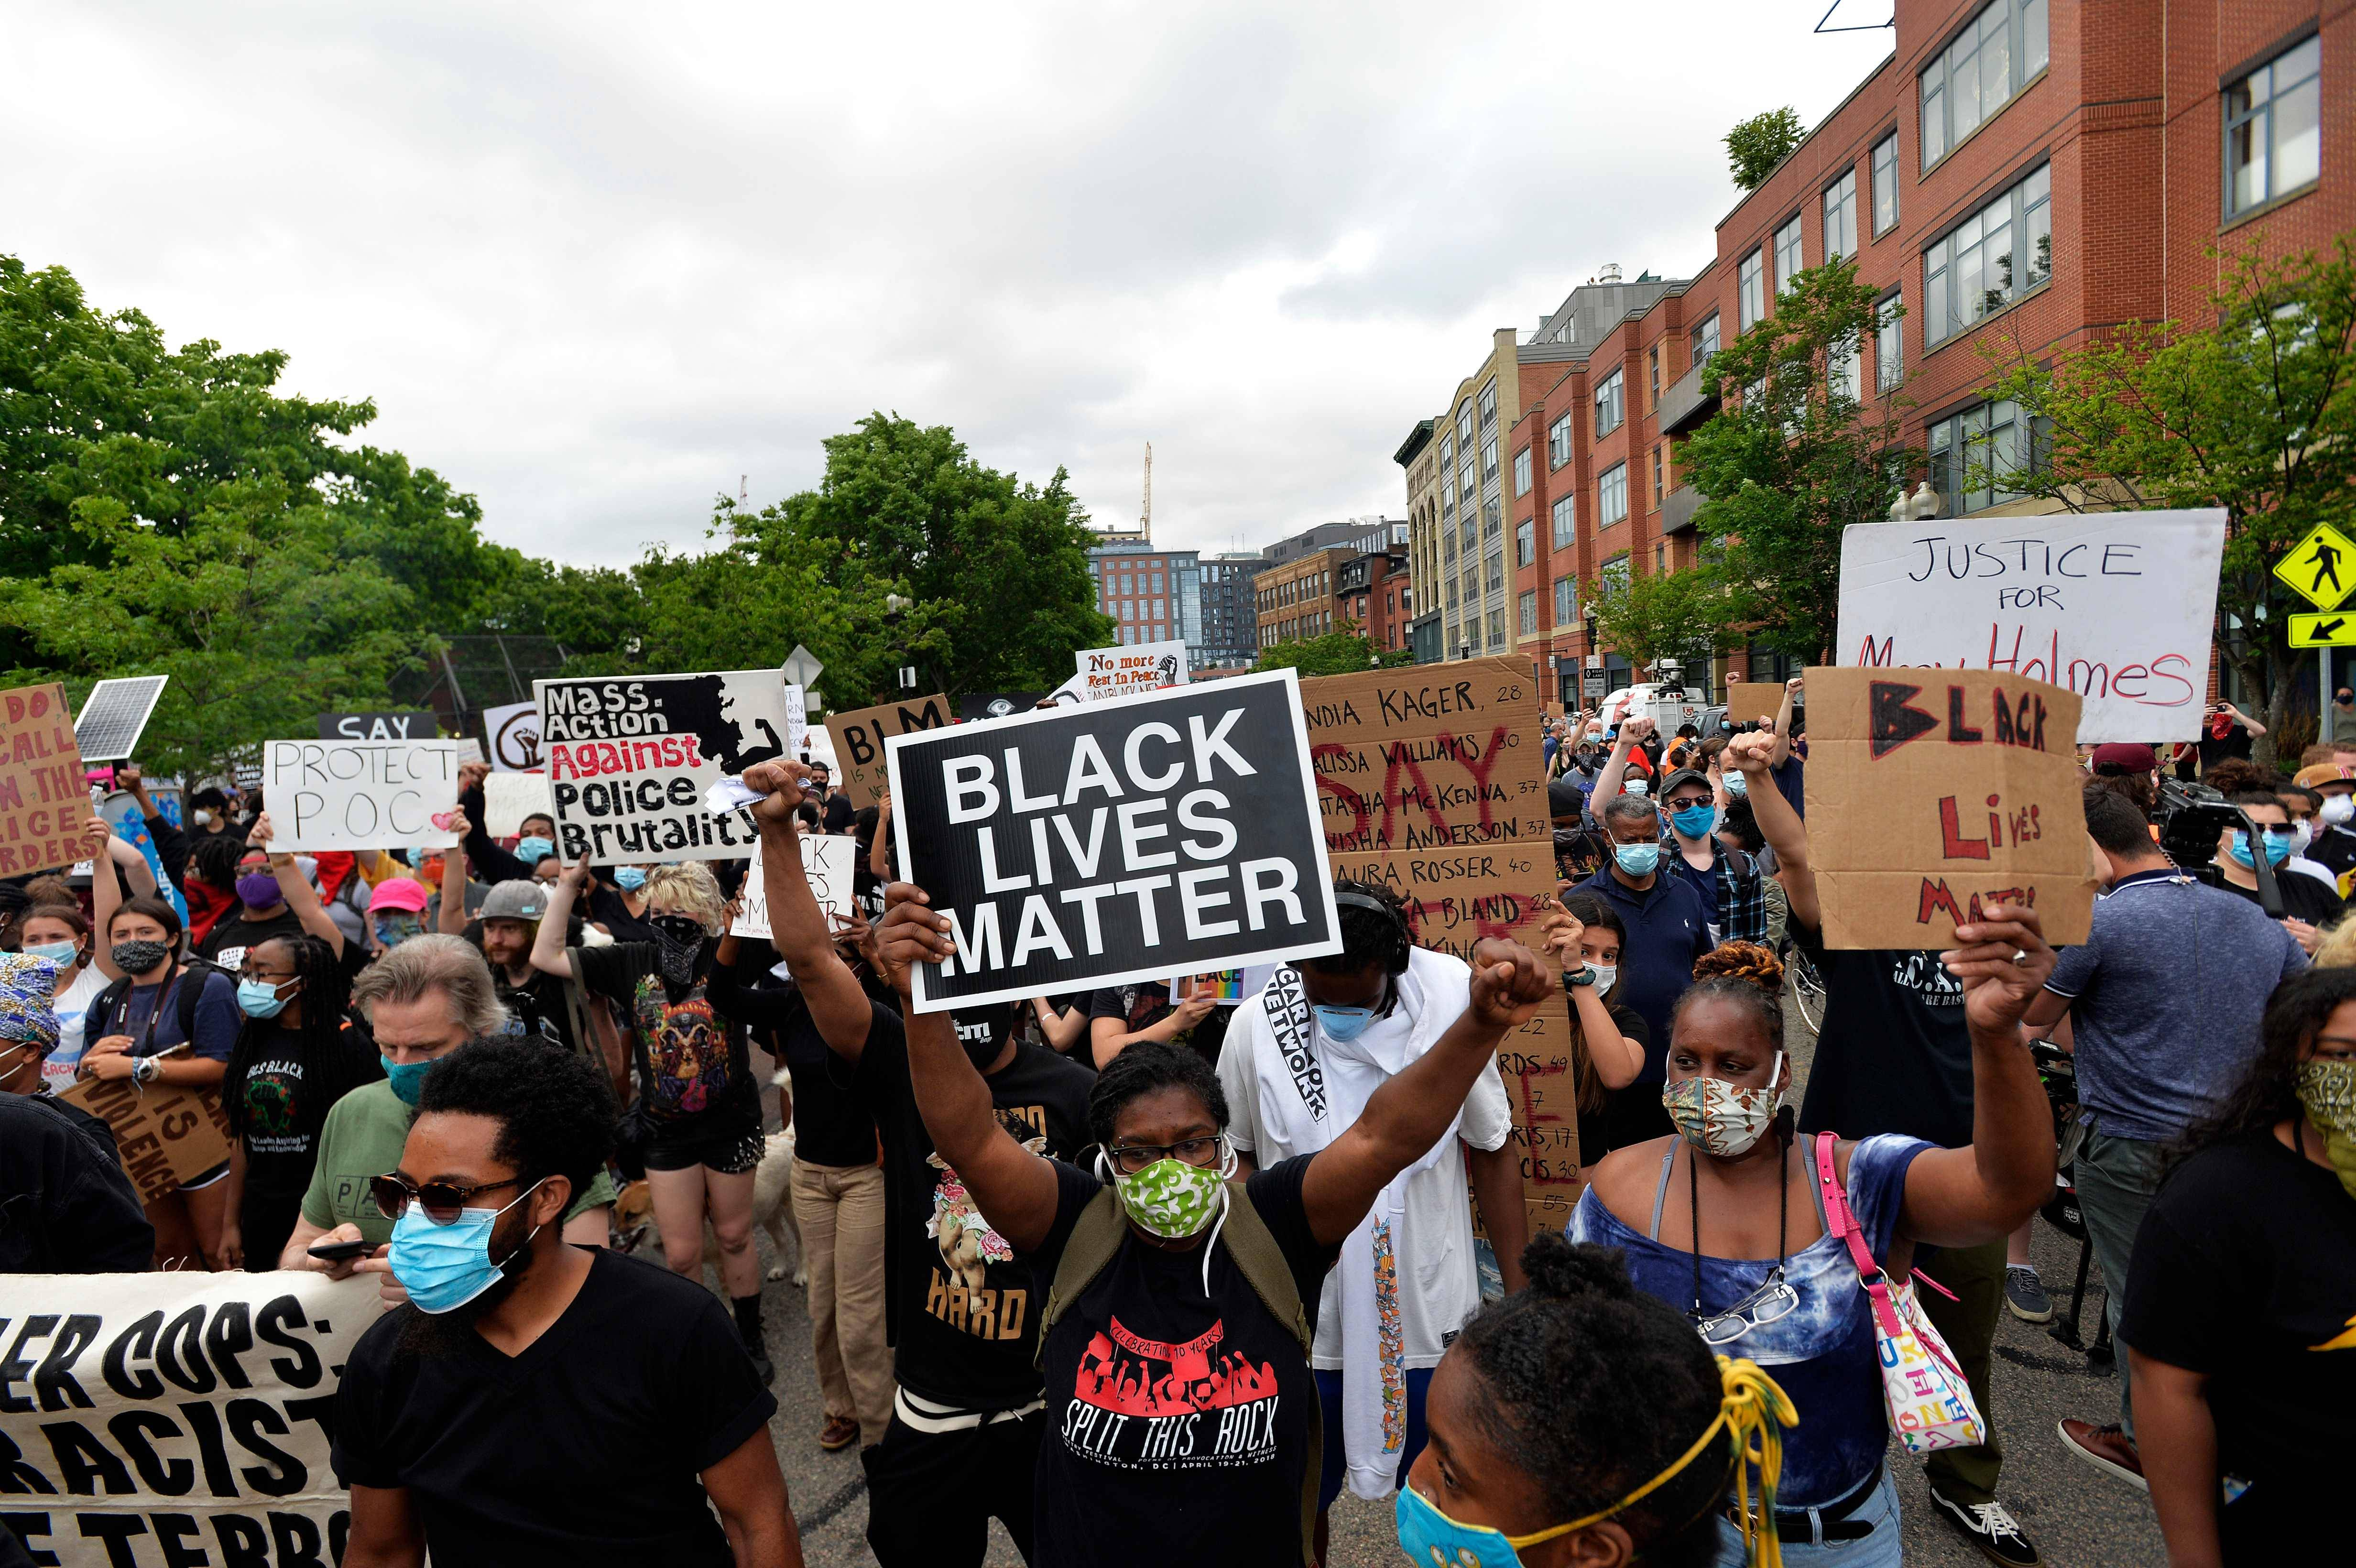 Protest over George Floyd death : Amazon Prime , Hulu , Twitter , HBO say Black Lives Matter